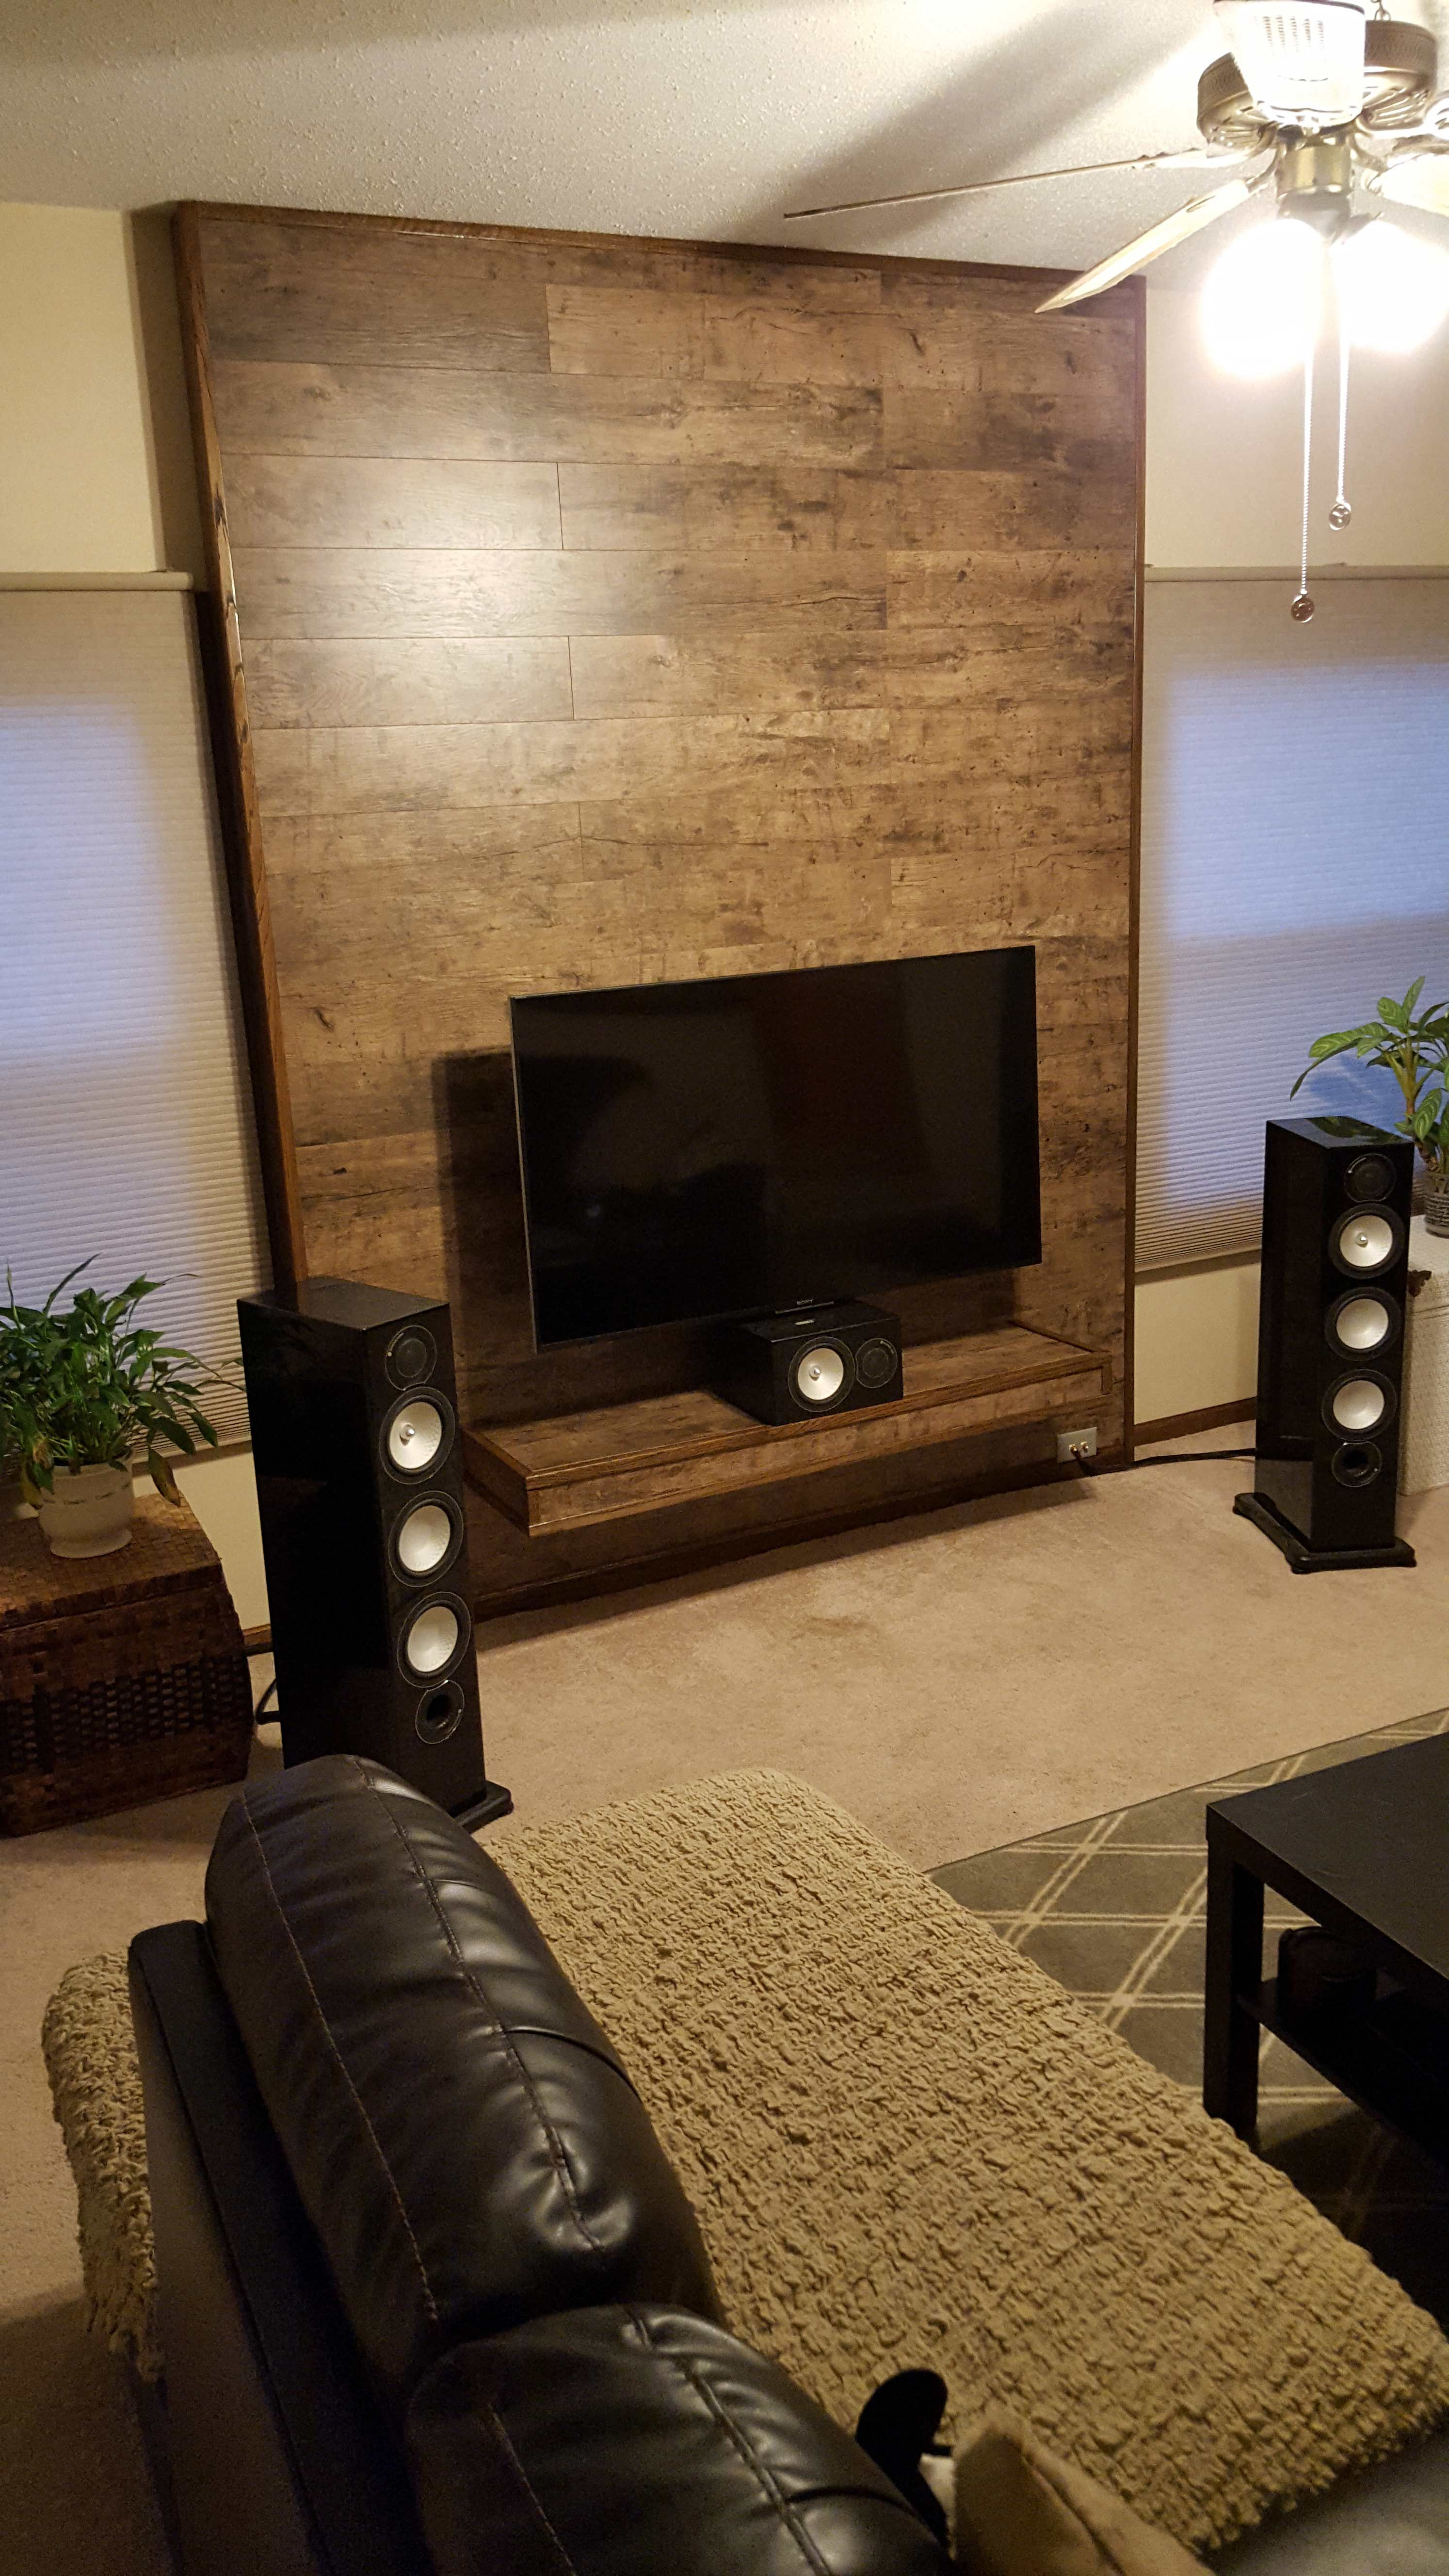 hight resolution of i built a false wall to conceal my home theater wires album on imgur